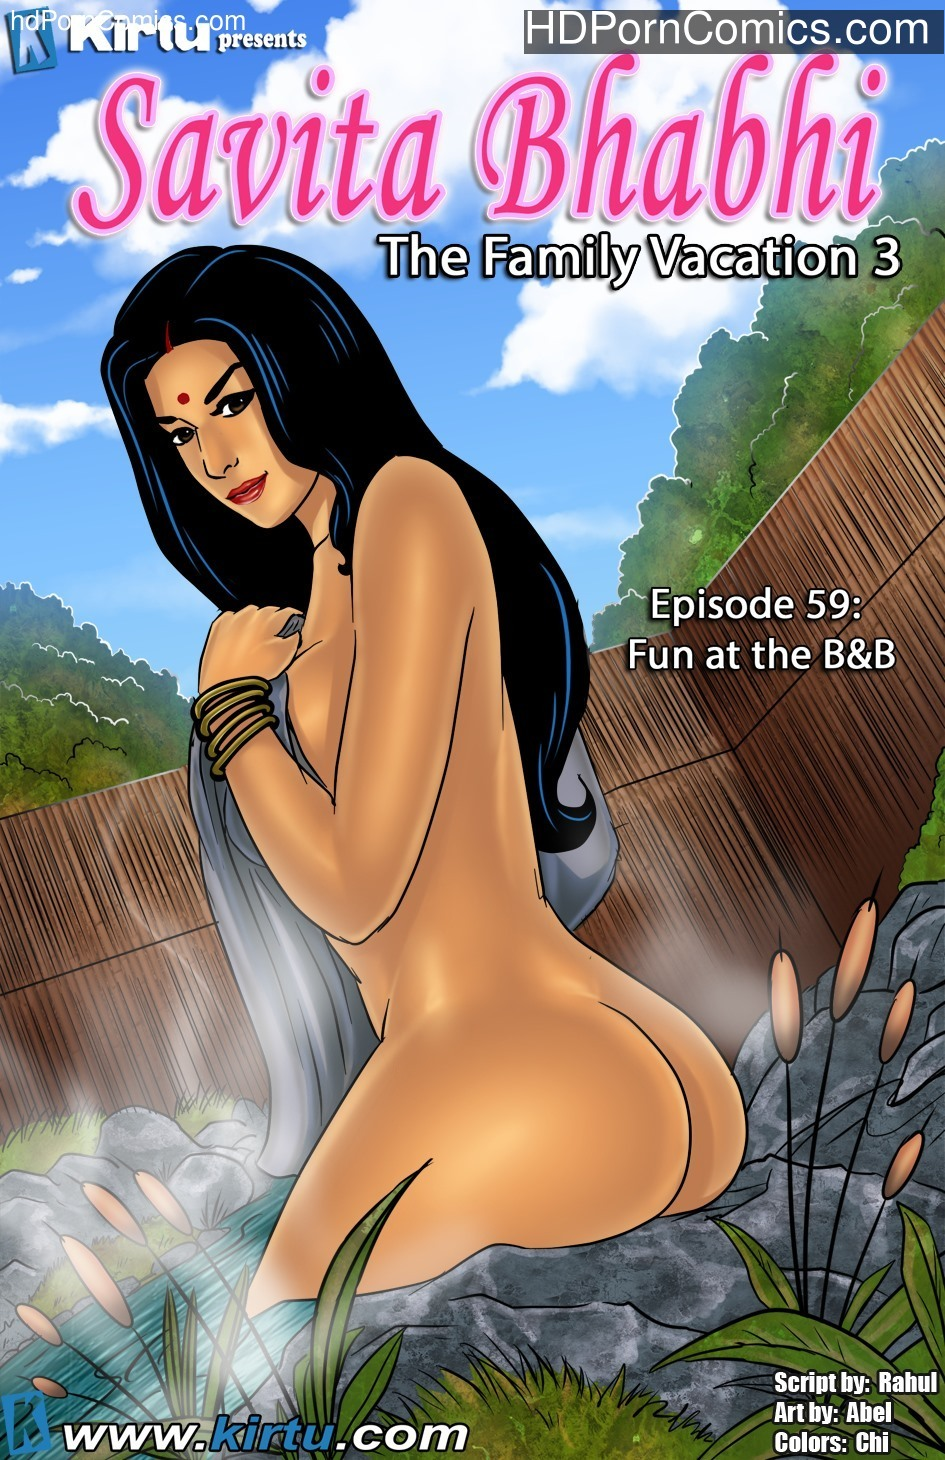 xxx comics-Savita Bhabhi 59- Fun at B&B free Porn Comic